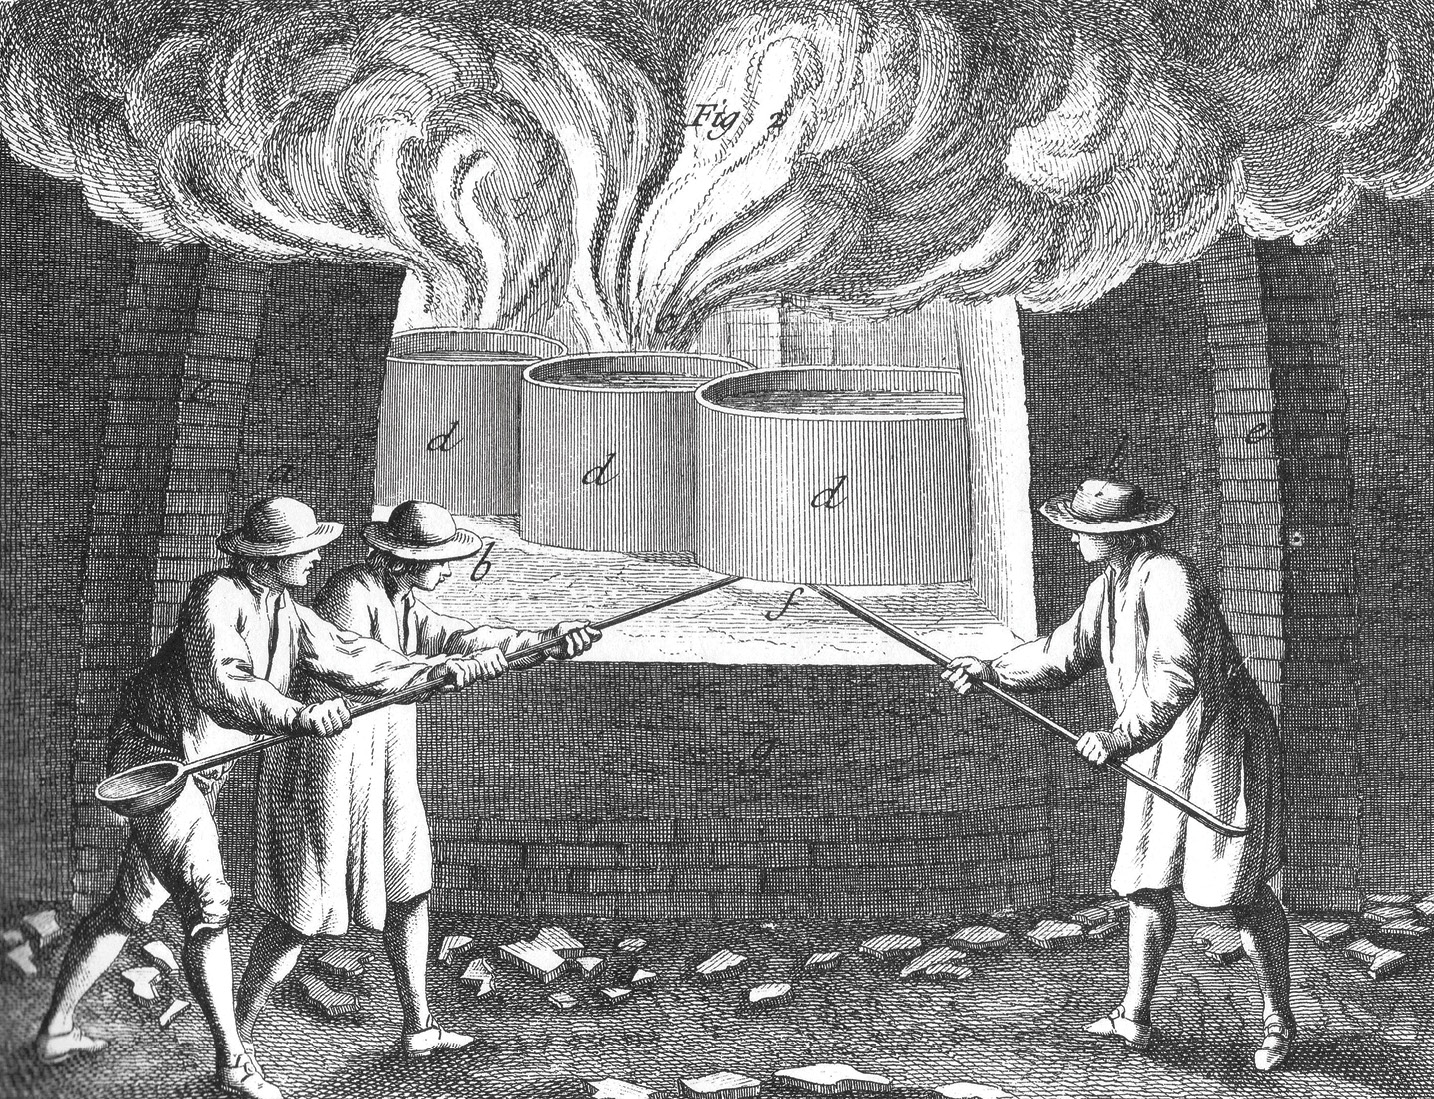 ABOVE Denis Diderot's famous Encyclopédie (in English, Encyclopedia, or a Systematic Dictionary of the Sciences, Arts, and Crafts), published in France between 1751 and 1772, illustrates various stages in the making of glass. Here the crucibles (d) full of raw materials are being introduced into the furnace to begin the melting process.